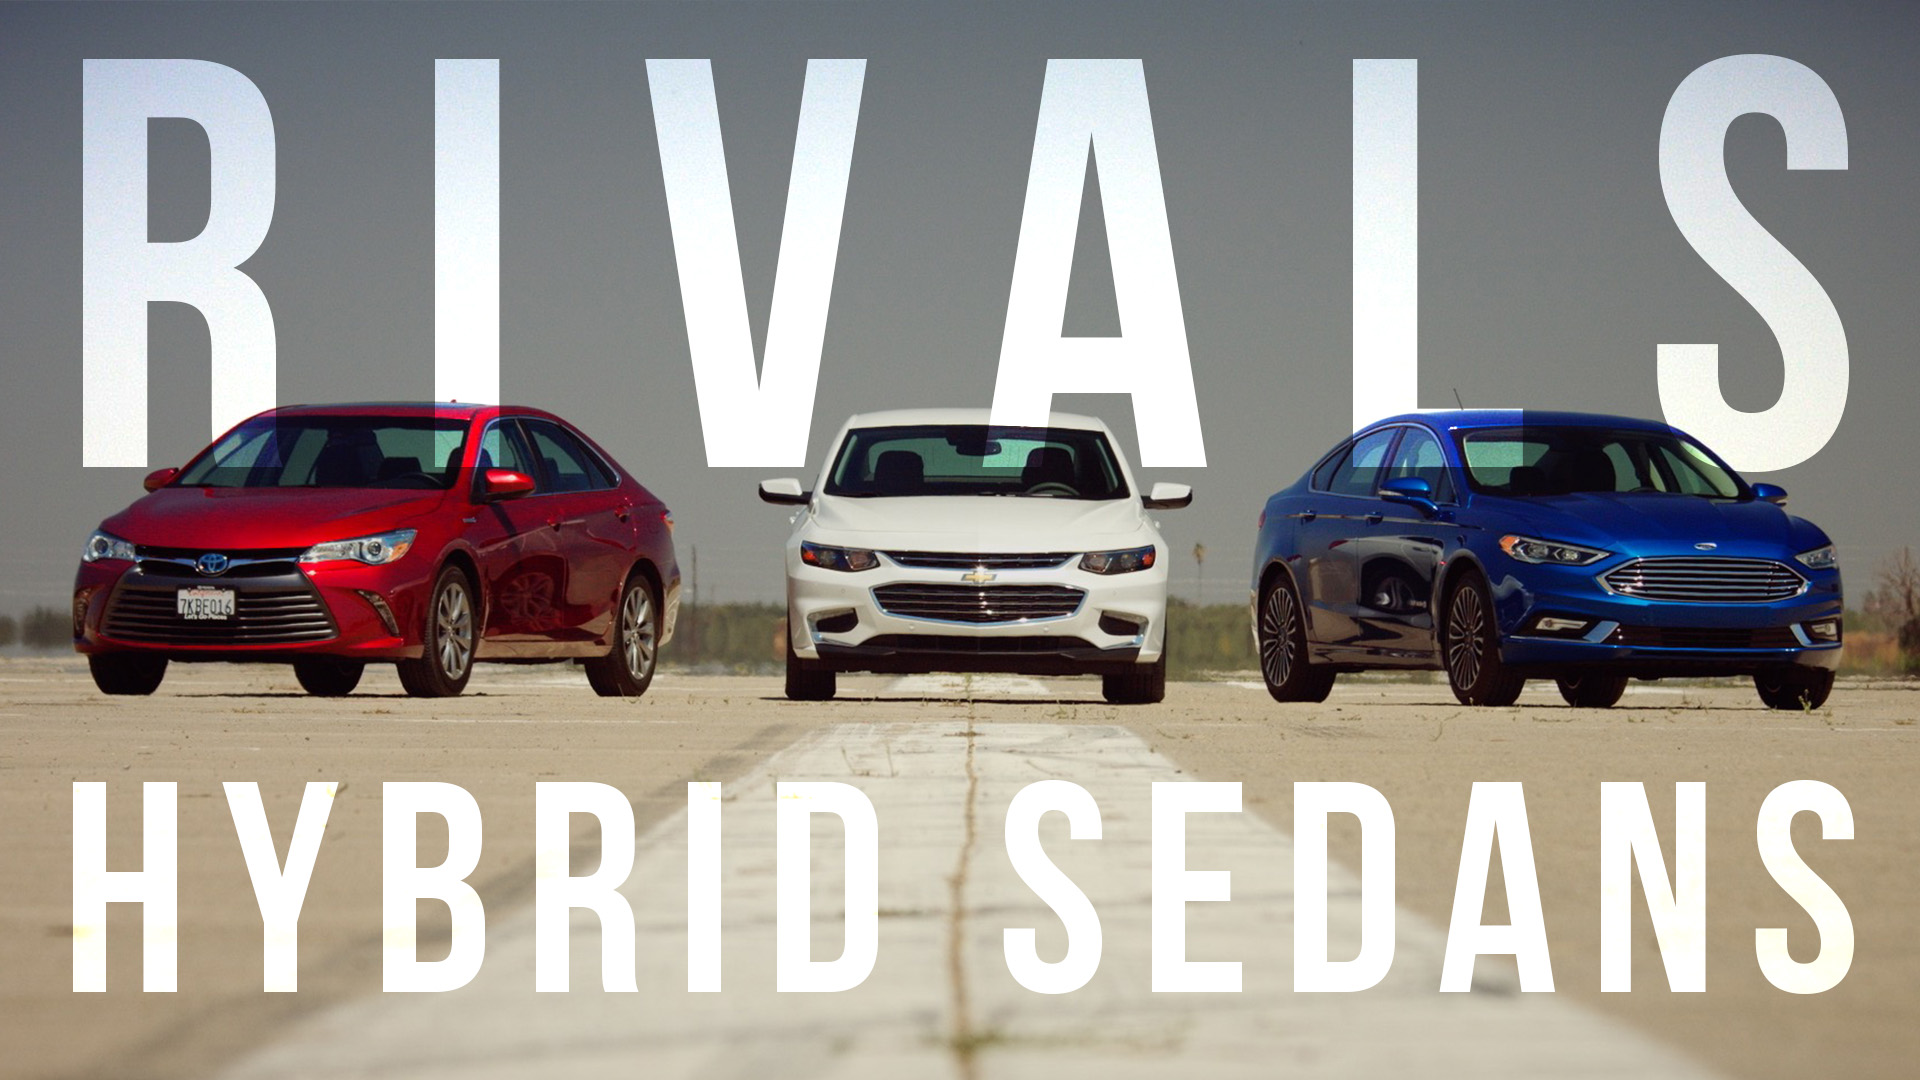 Video: Hybrid Rivals: Ford Fusion vs Chevrolet Malibu vs Toyota Camry